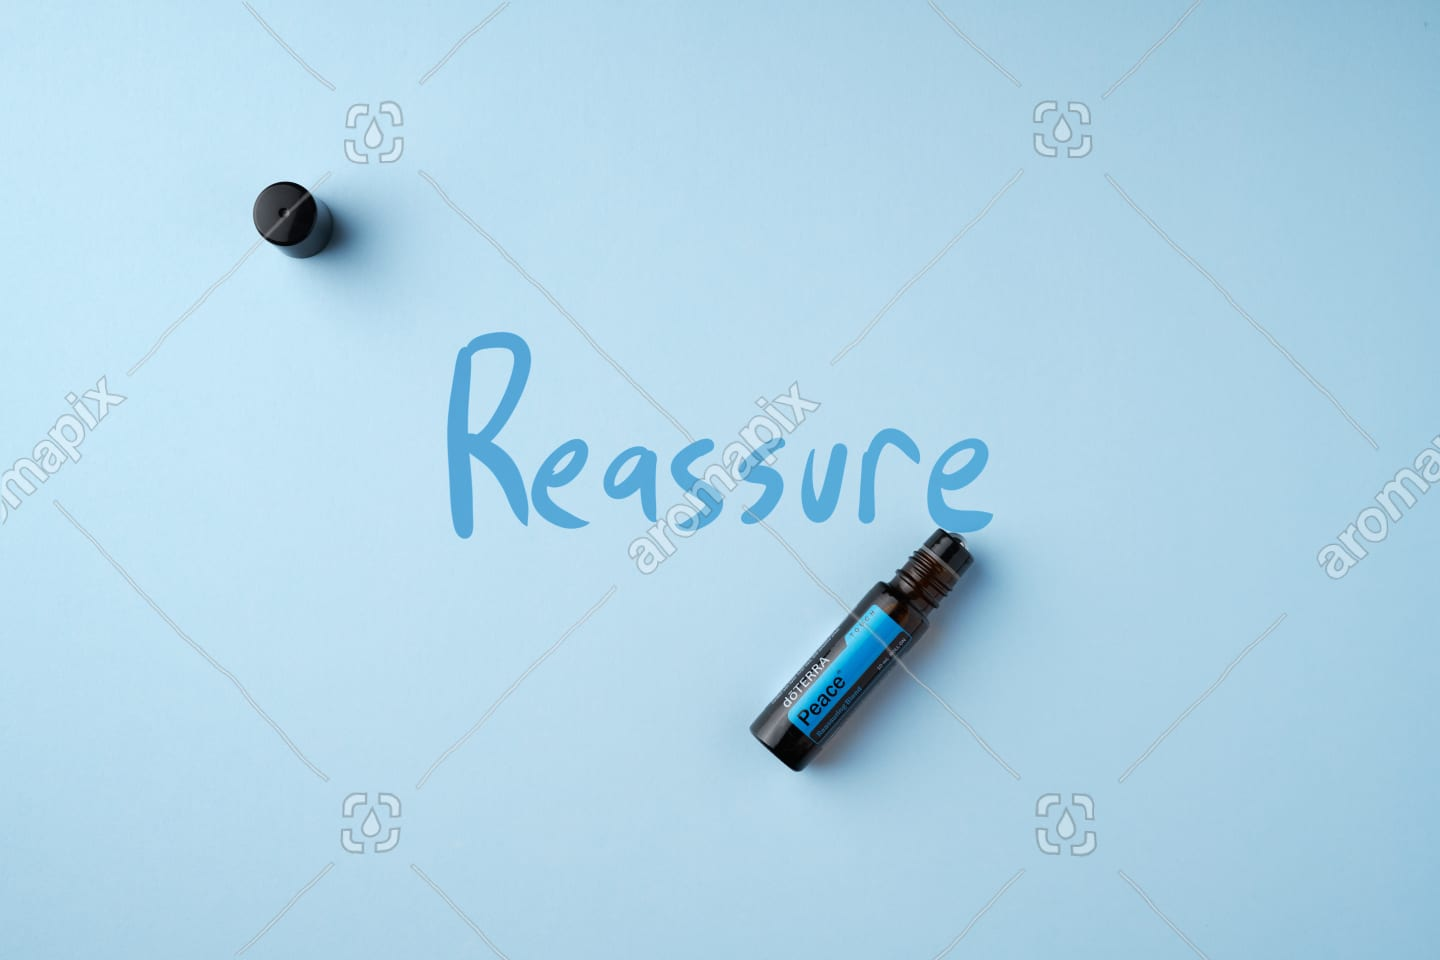 doTERRA Peace Touch on light blue - Reassure